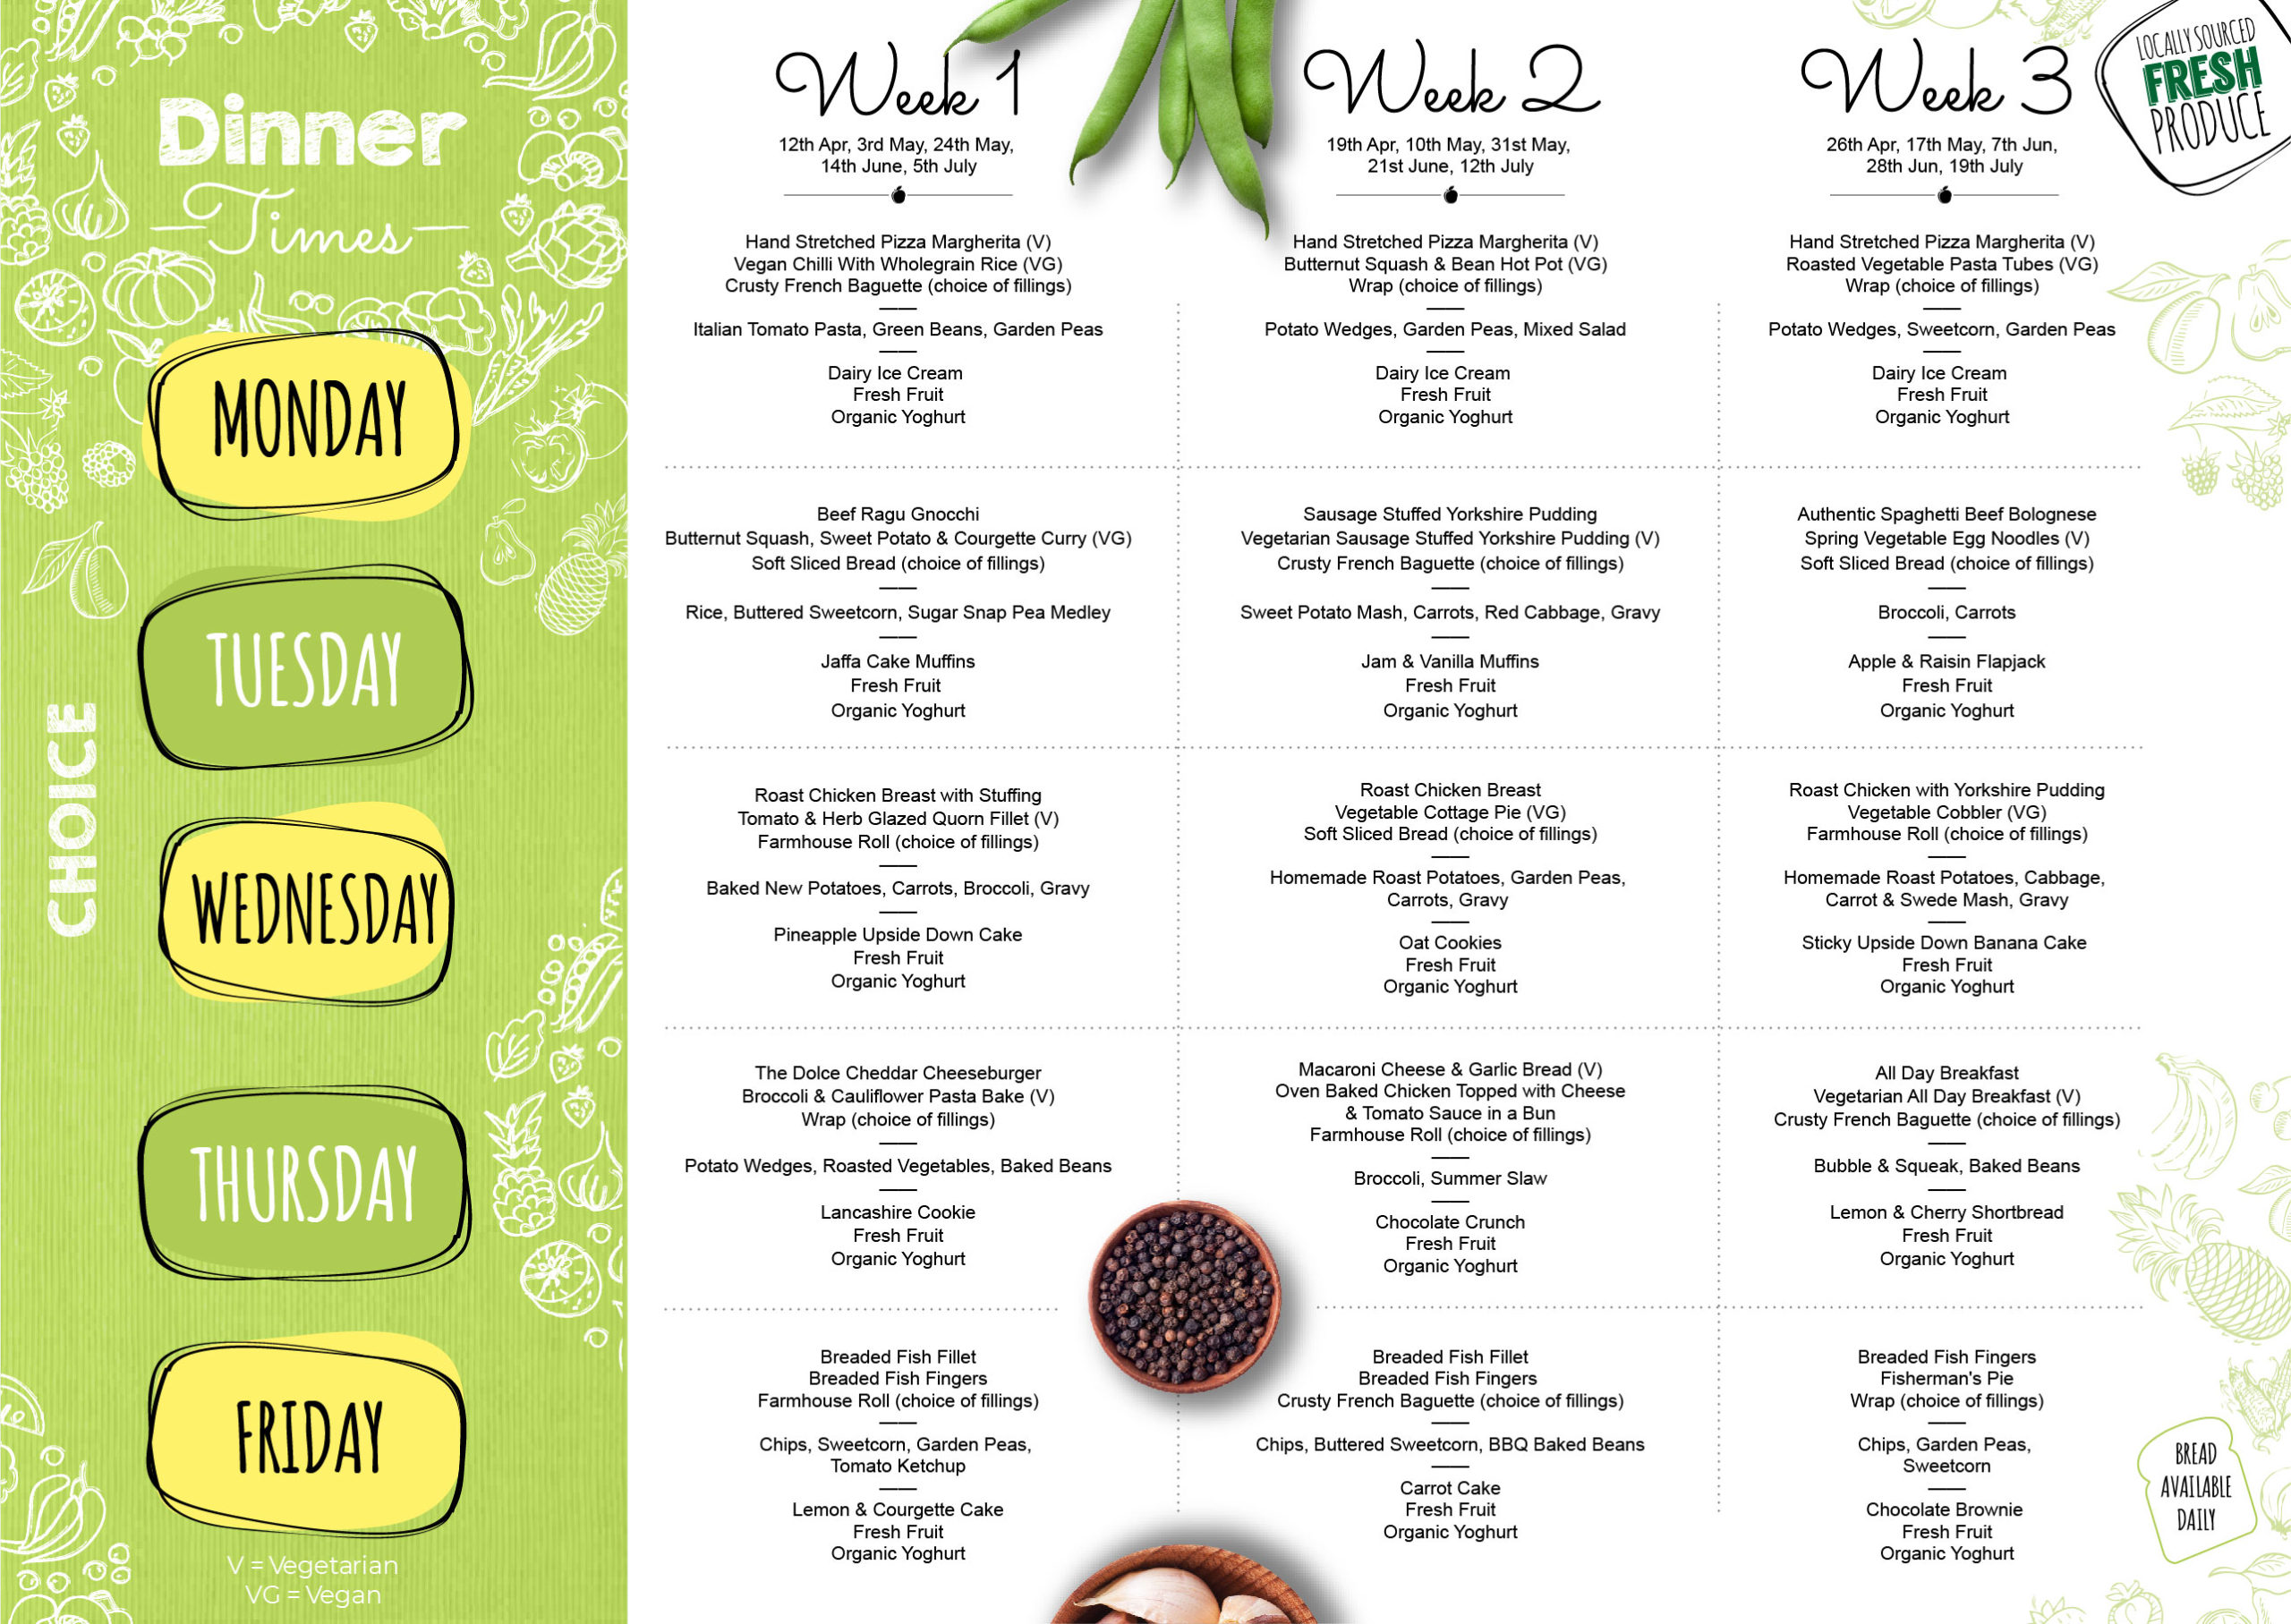 windmill-hill-primary-school-meals-menu-summer-2021-dolce-grab-and-go